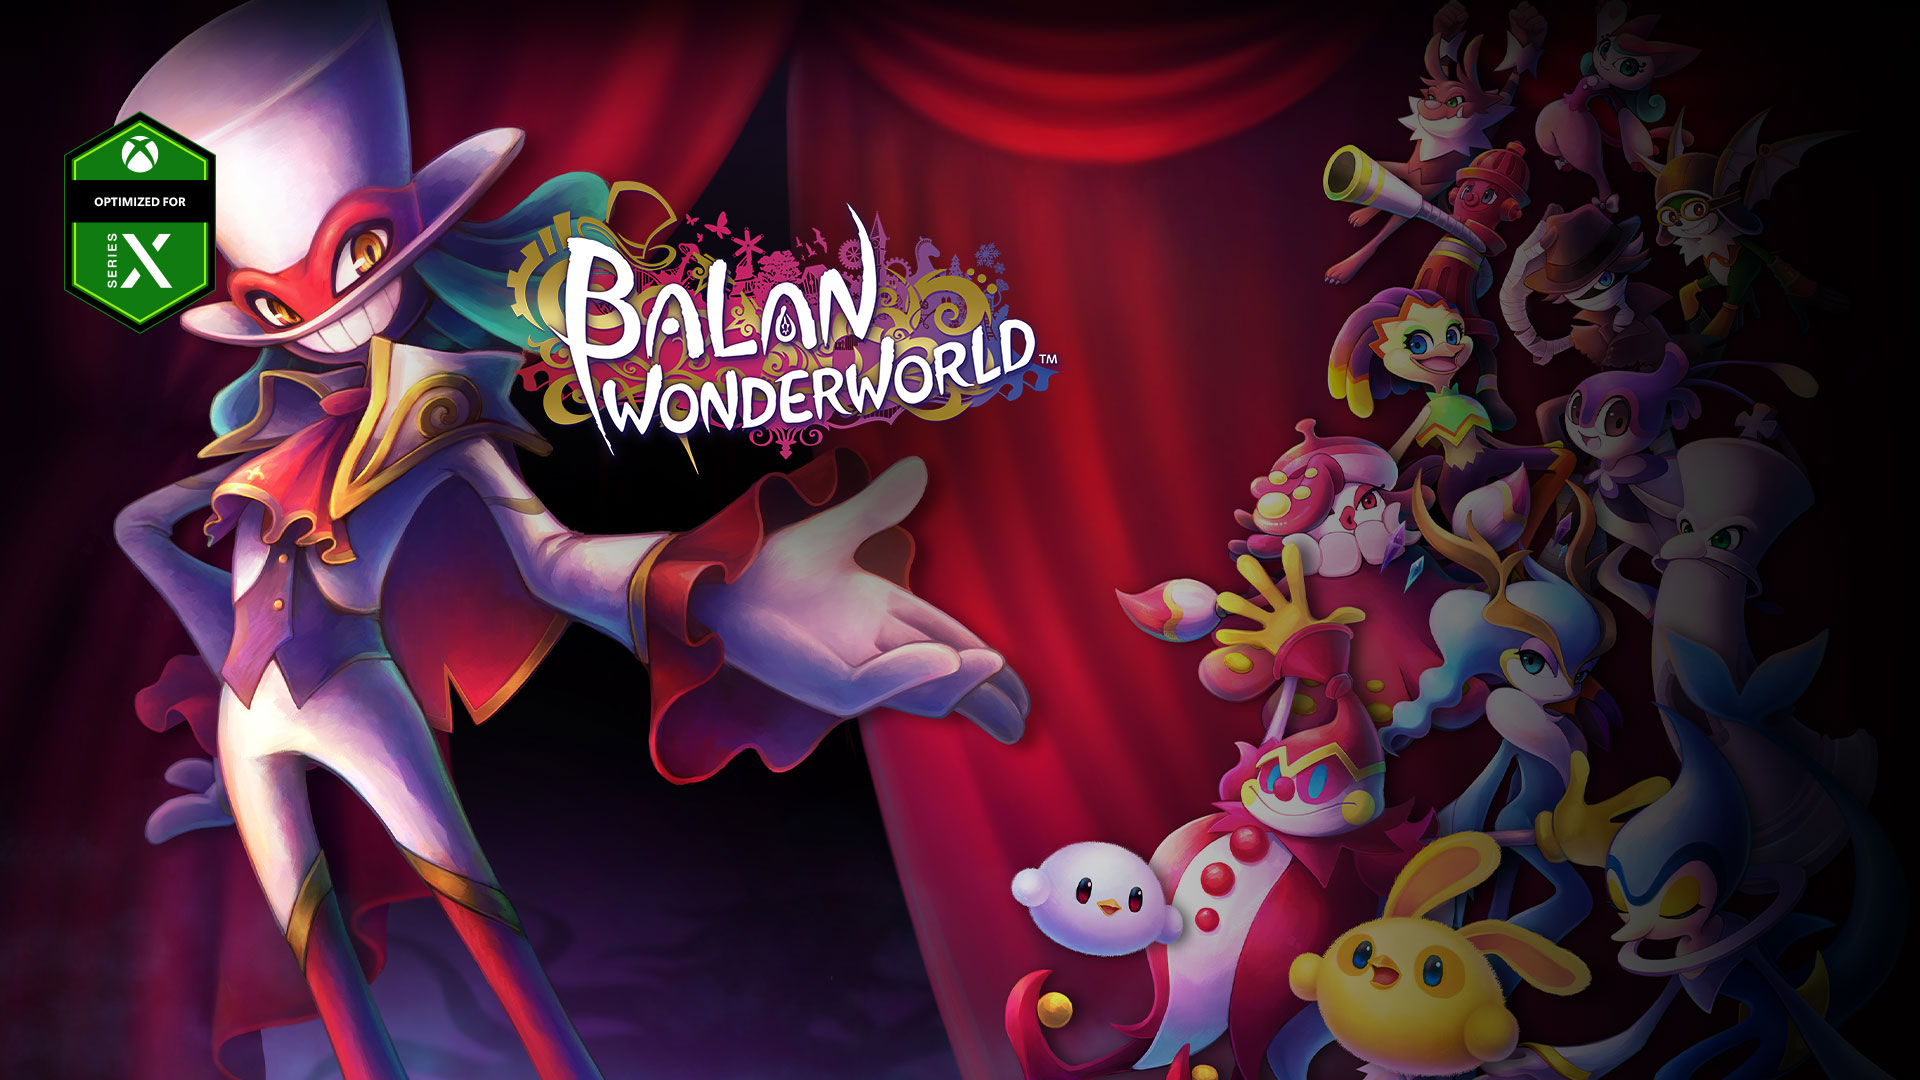 Optimized for Series X, Balan Wonderworld, A well-dressed demon gestures to a group of colorful creatures.